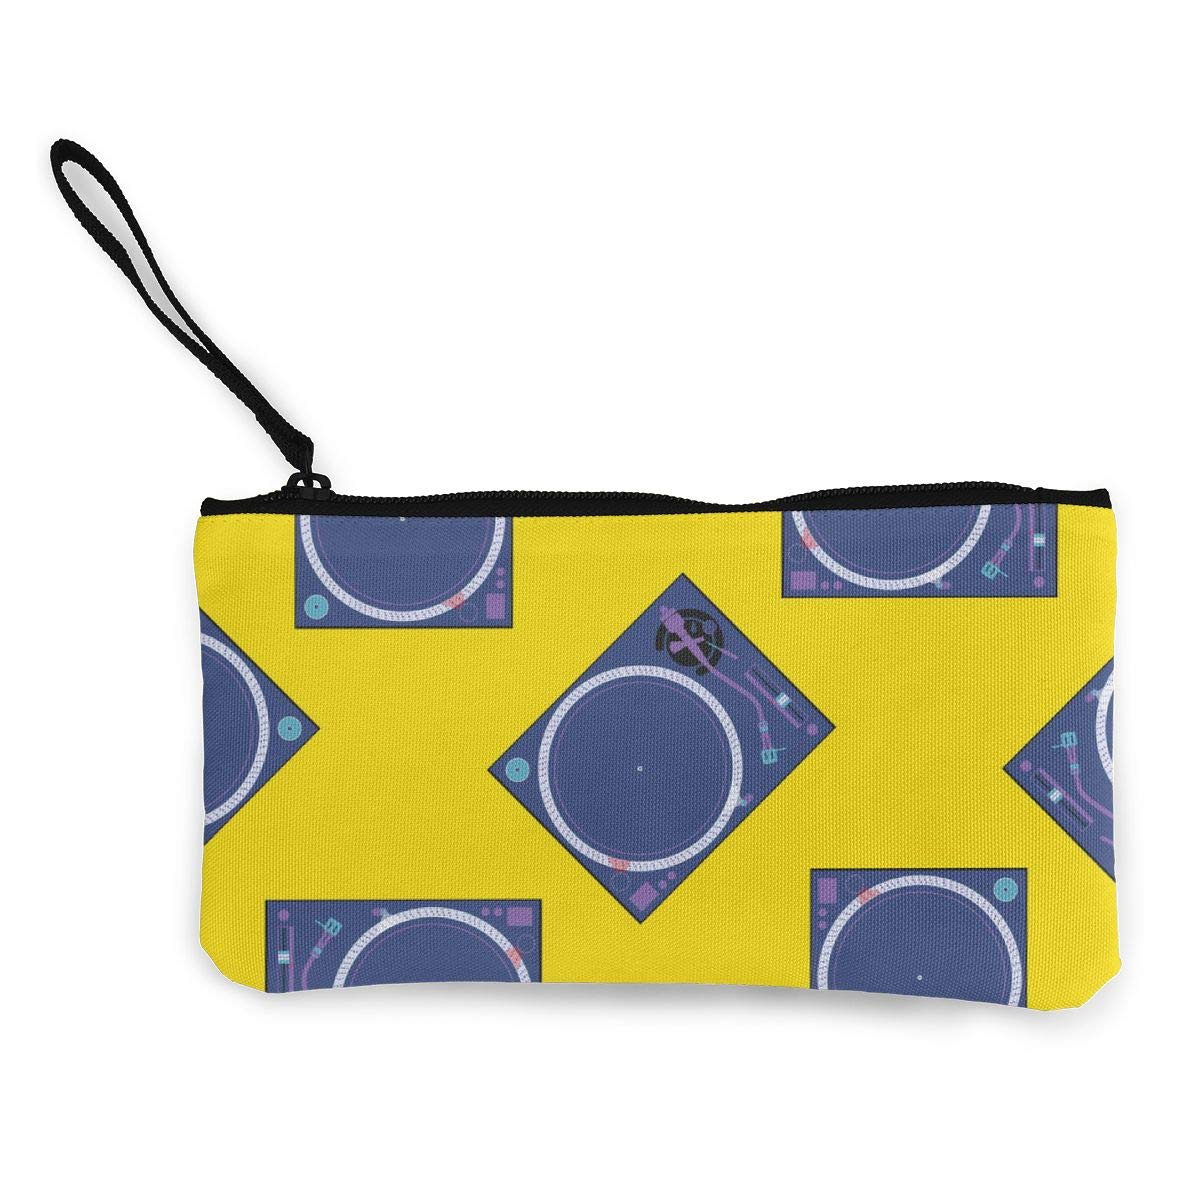 Vinyl Turntable Pop Art Pattern Canvas Change Coin Purse Assorted Wallet Bag with Zip